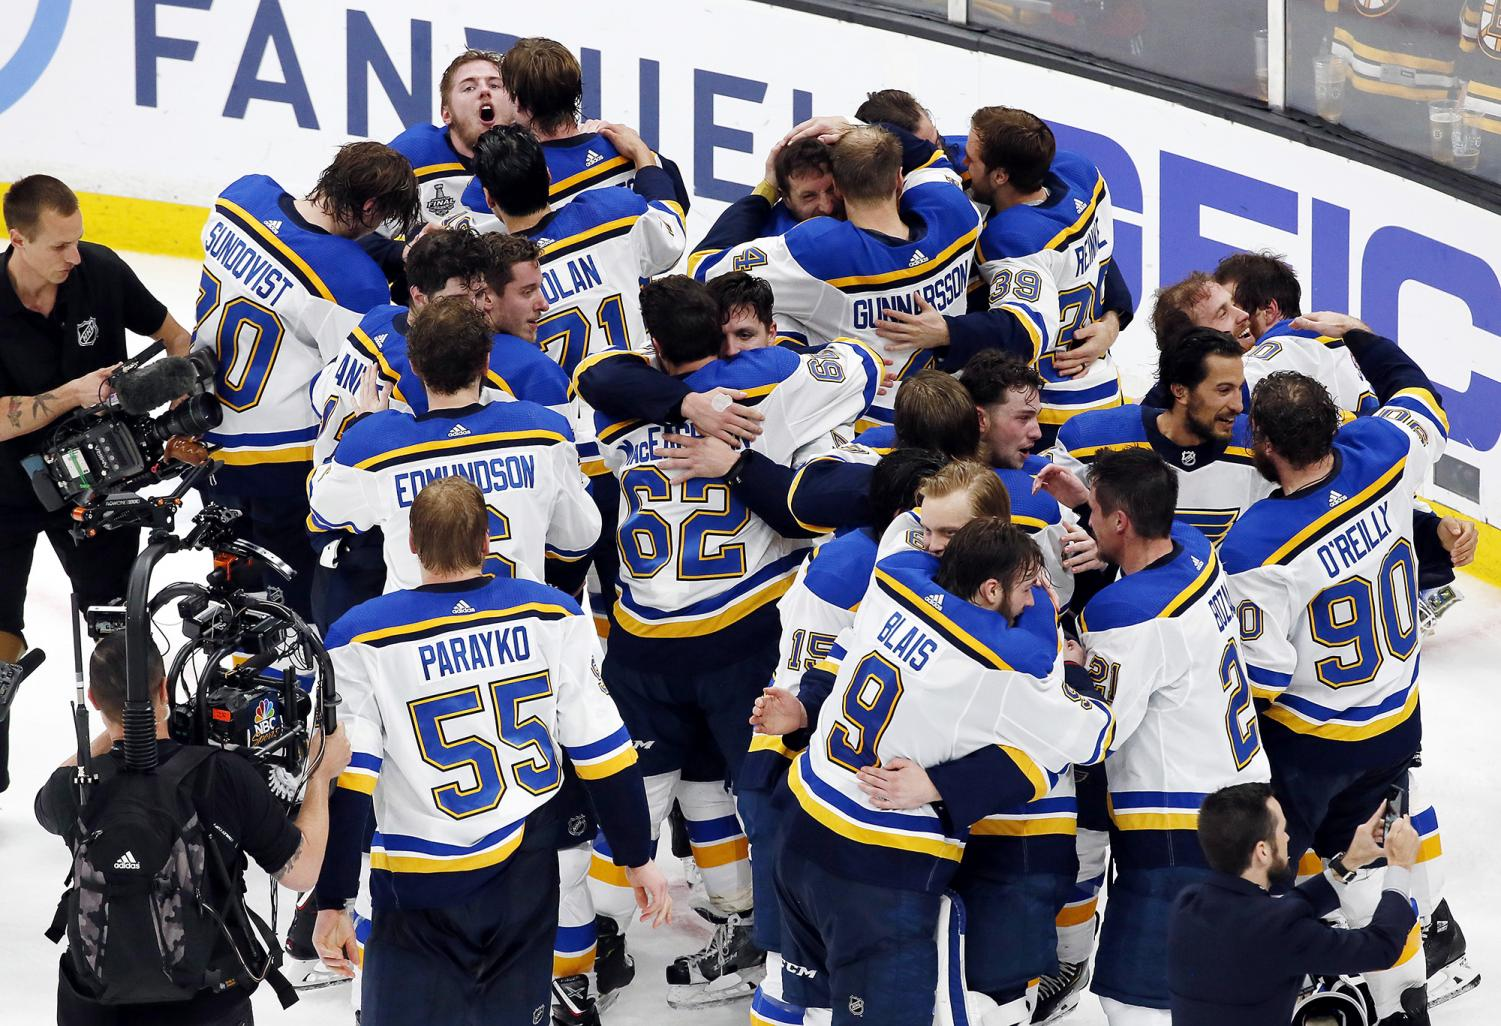 Blues celebrate as they are named Stanley Cup Champions.